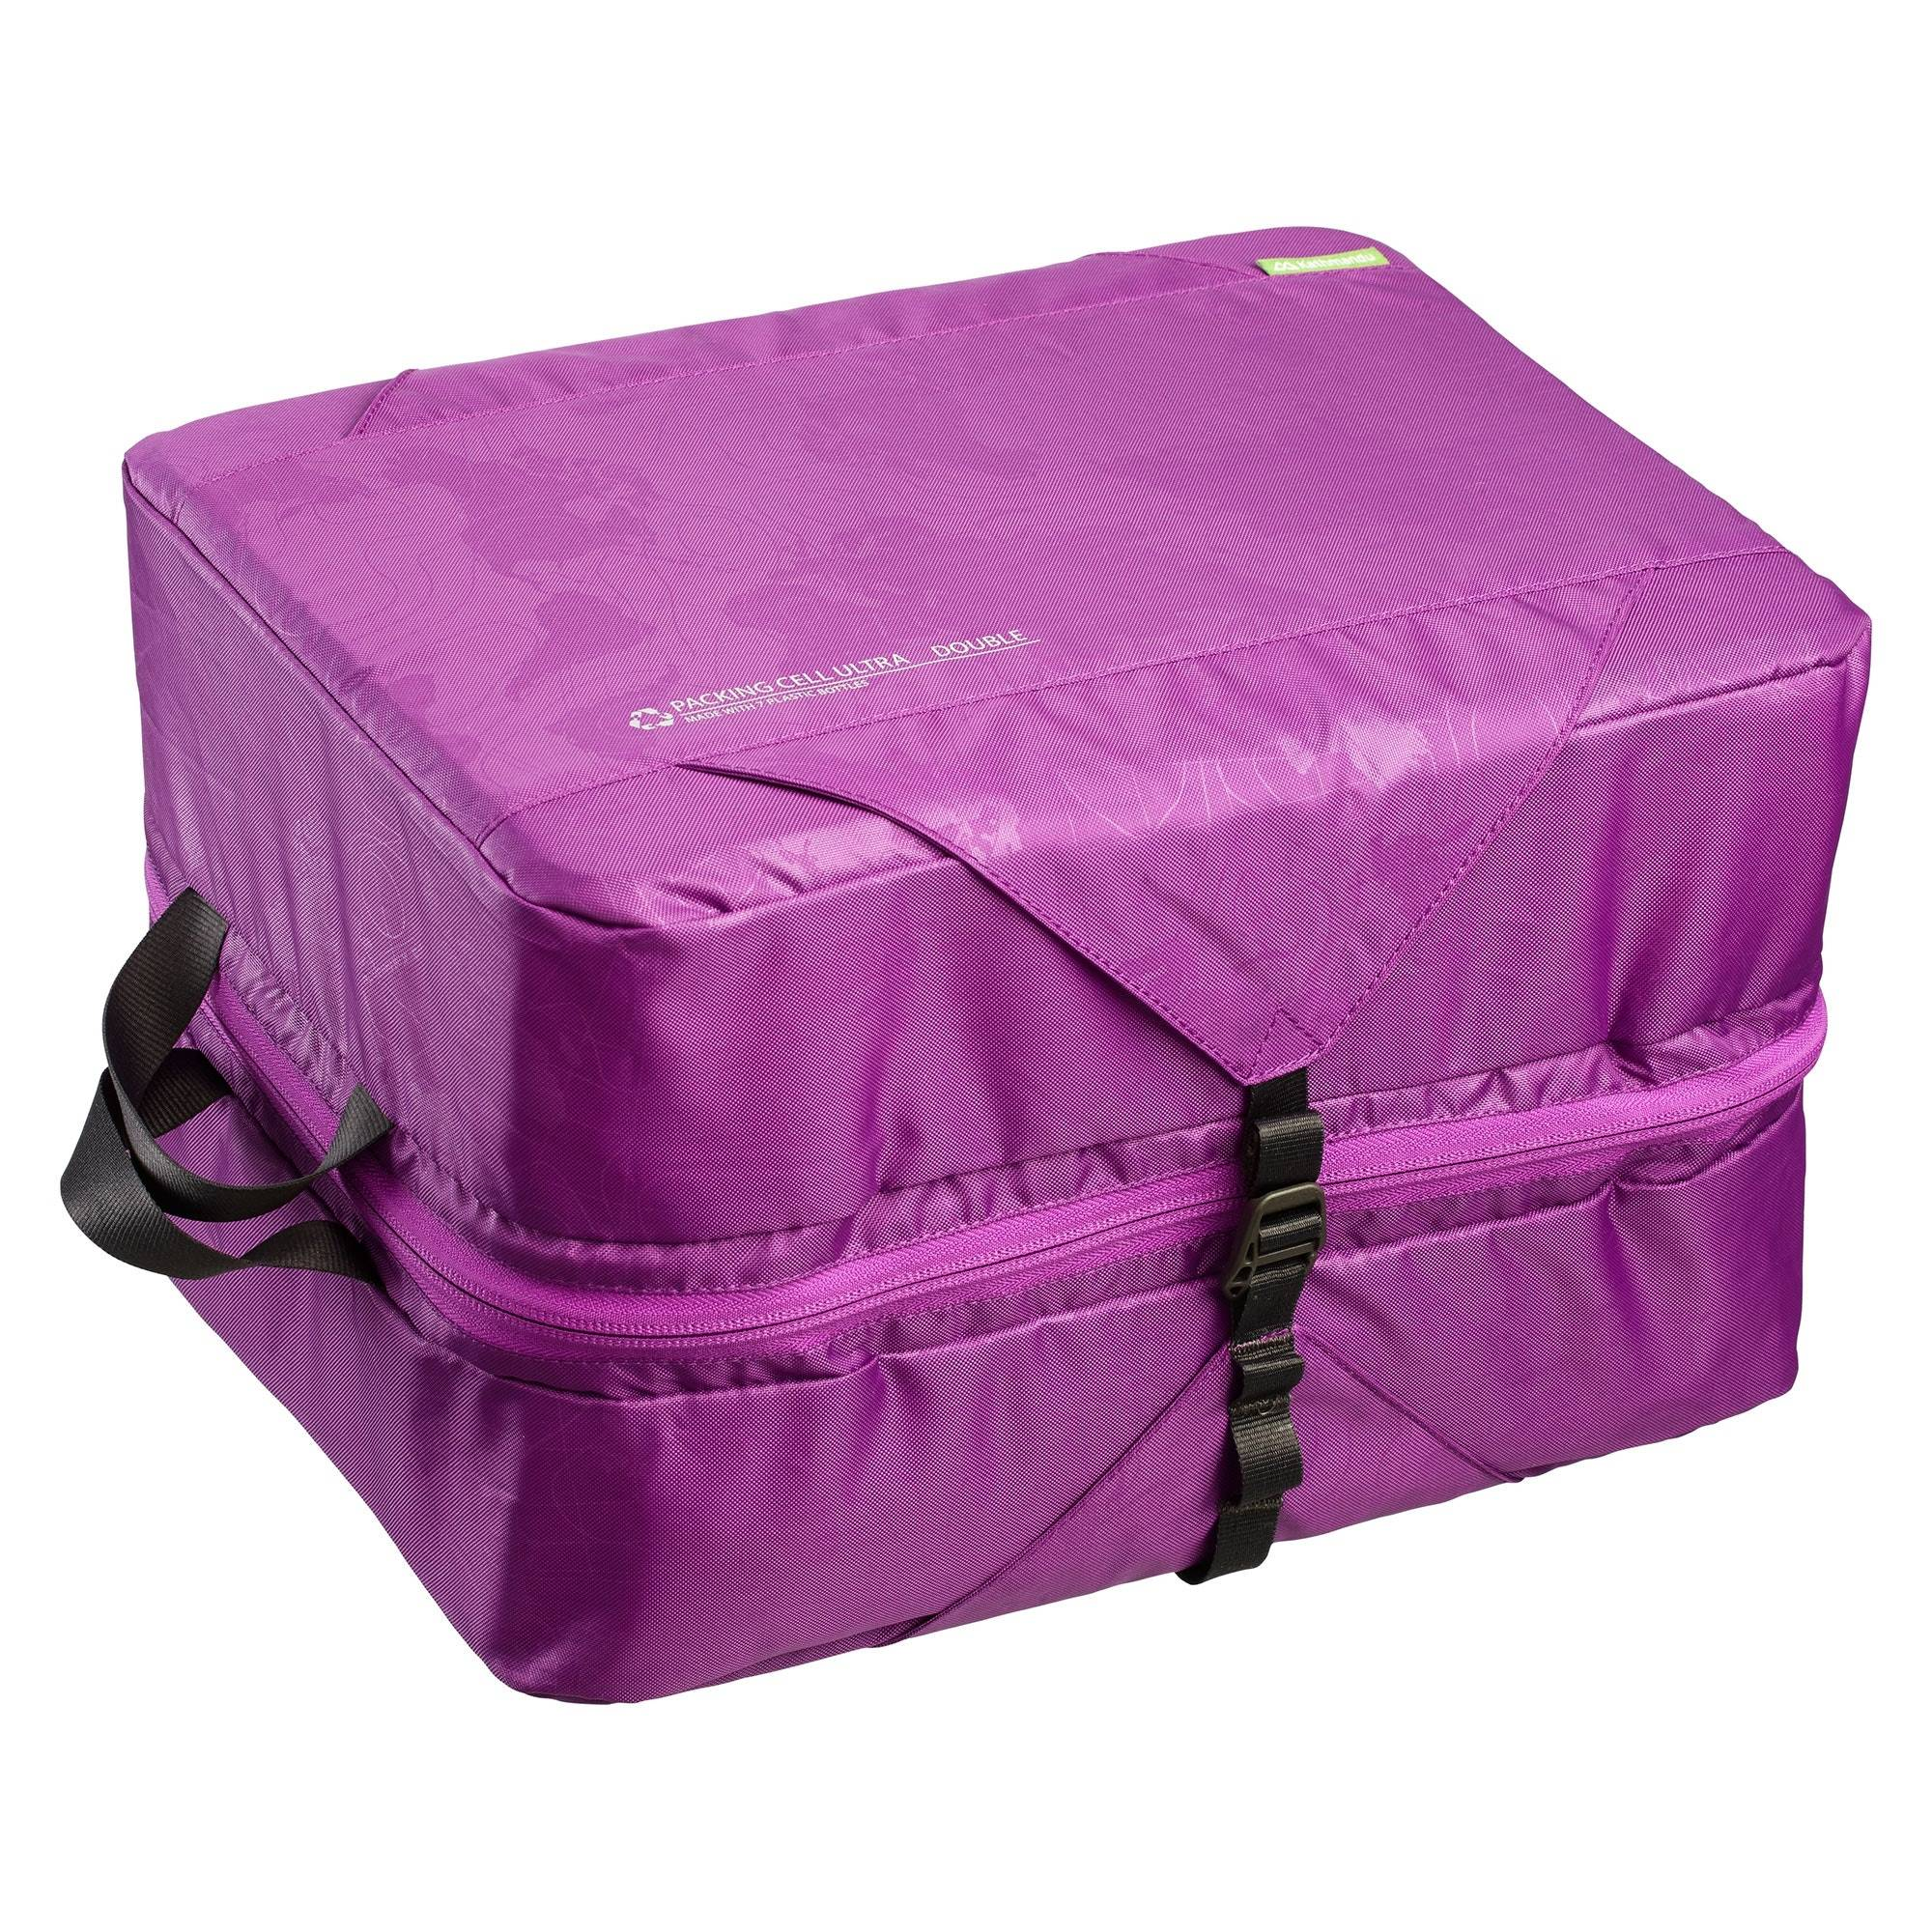 Kathmandu Packing Cell Ultra  - Violet - Size: ONE